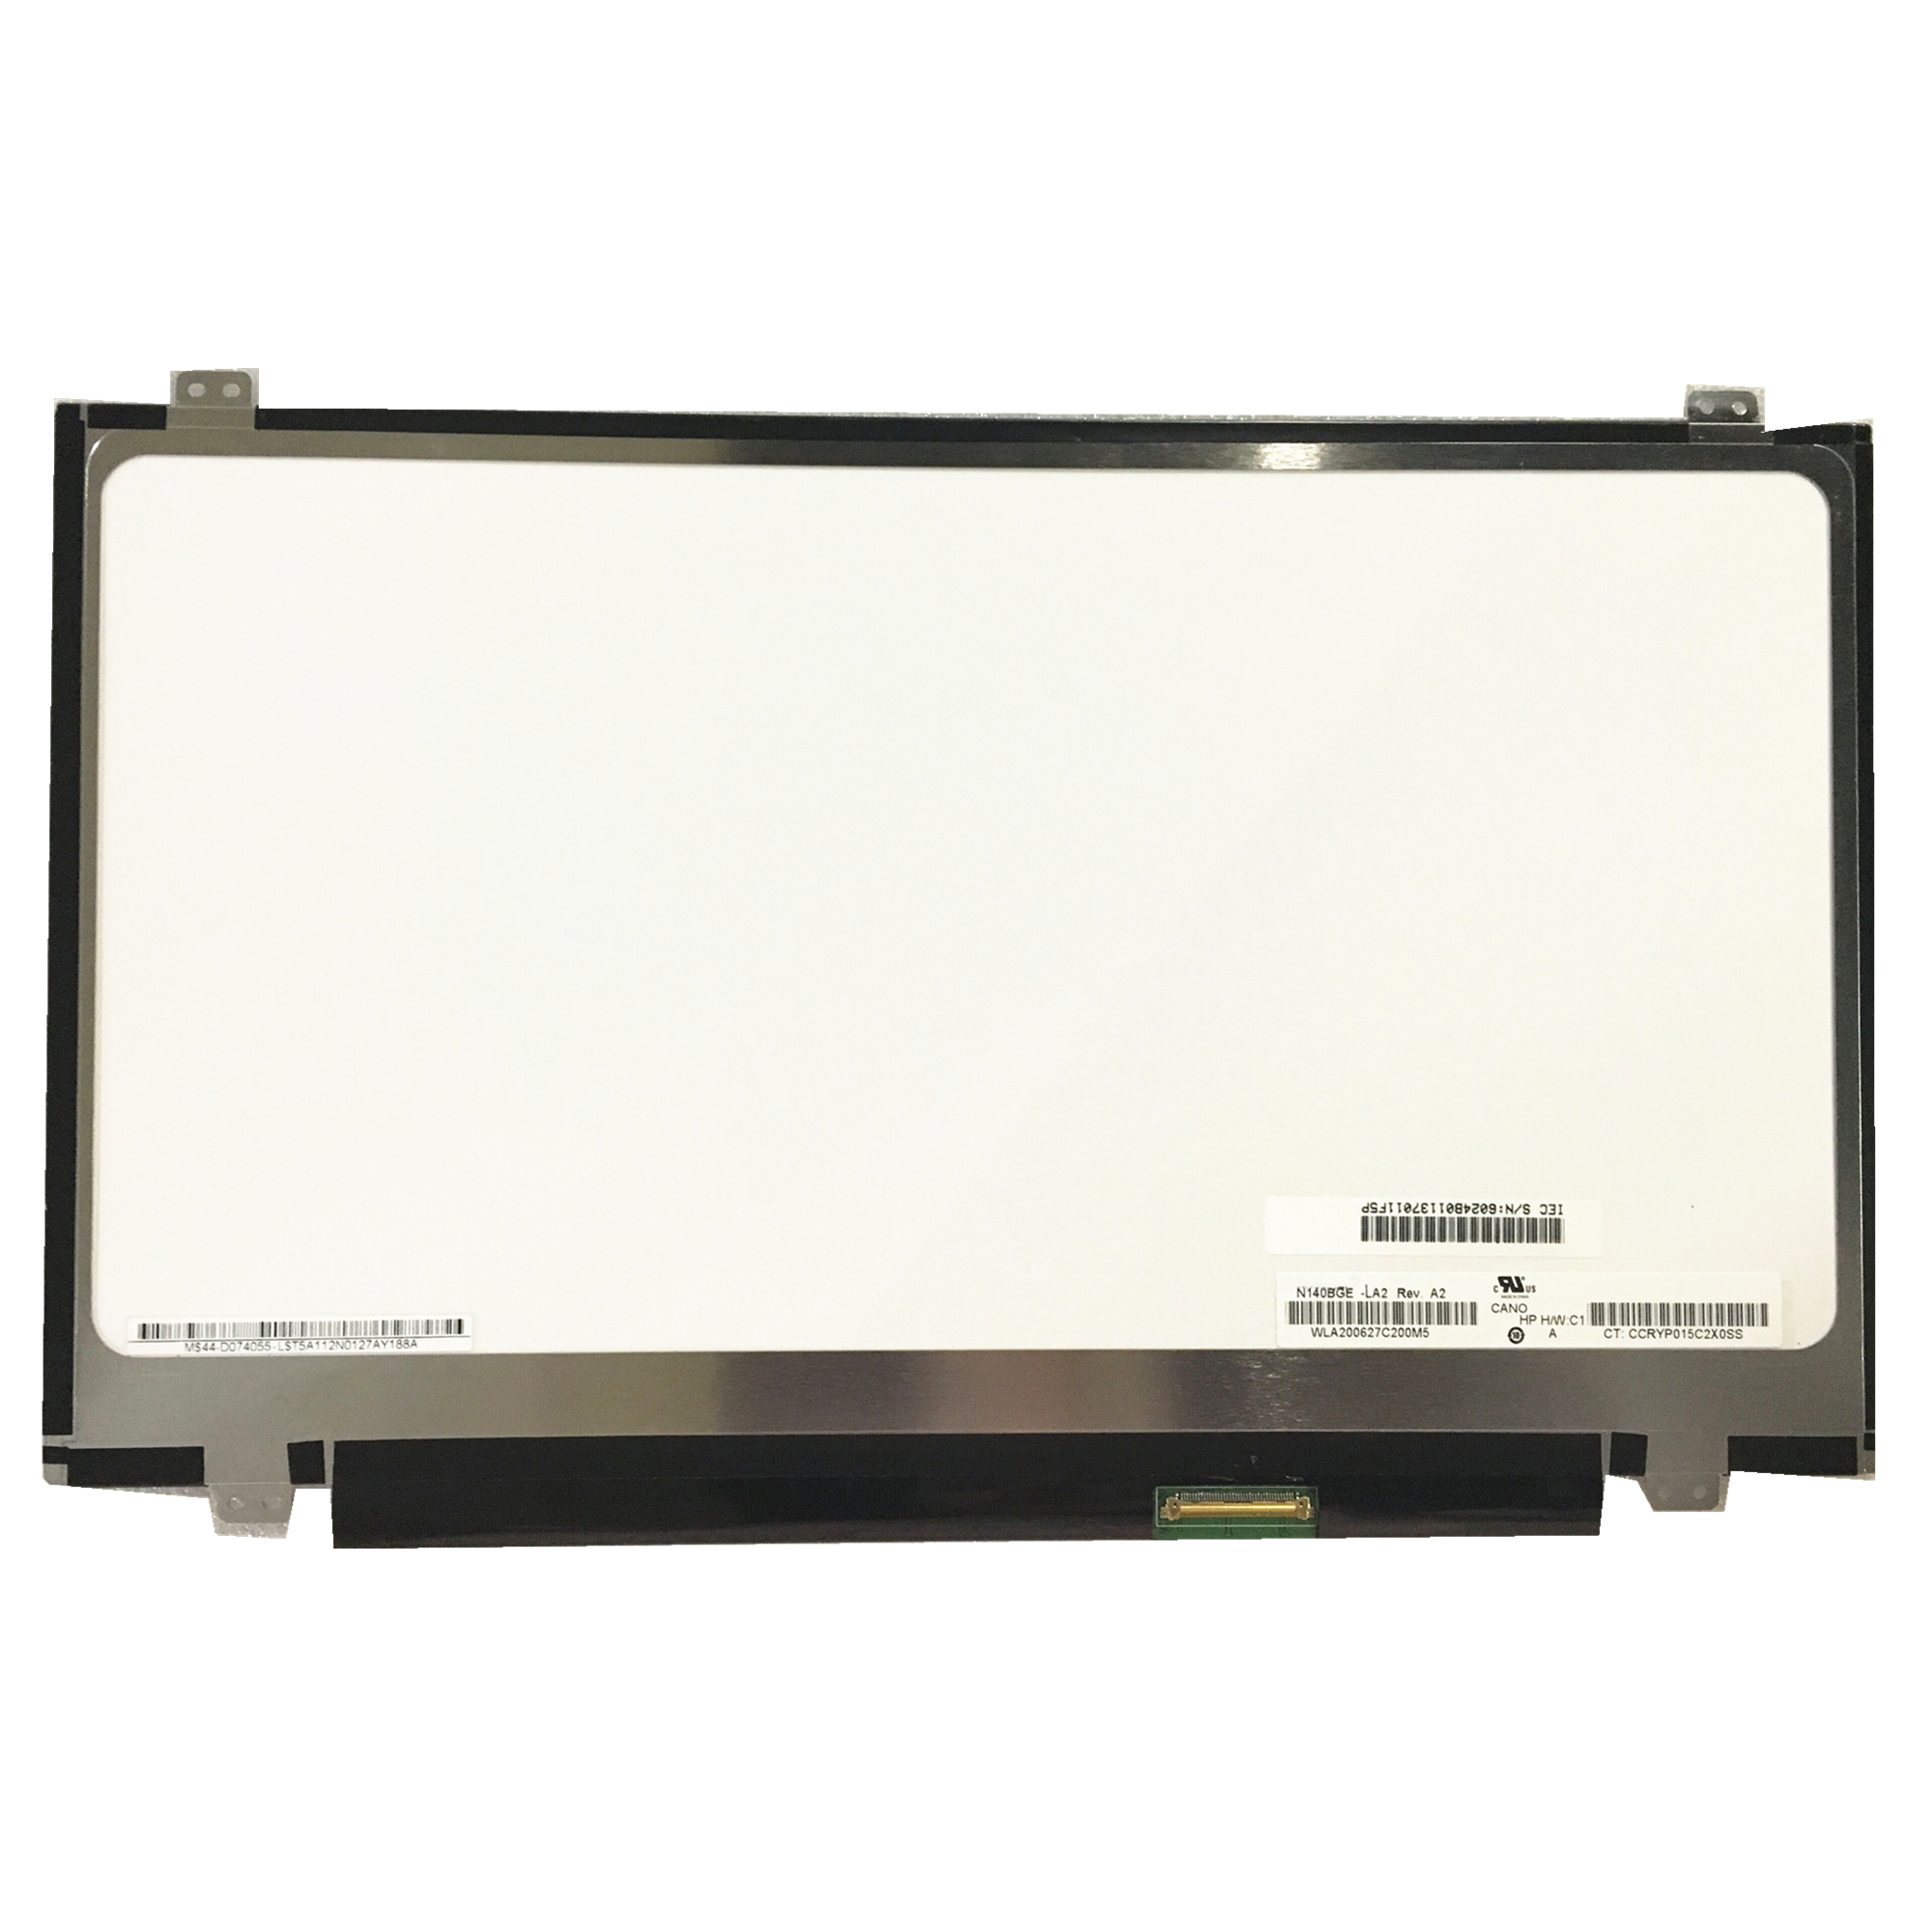 Free shipping N140BGE LA2 LP140WHU TLB1 N140BGE L42 L43 LP140WH2 TLA2 laptop lcd screen 1366 768